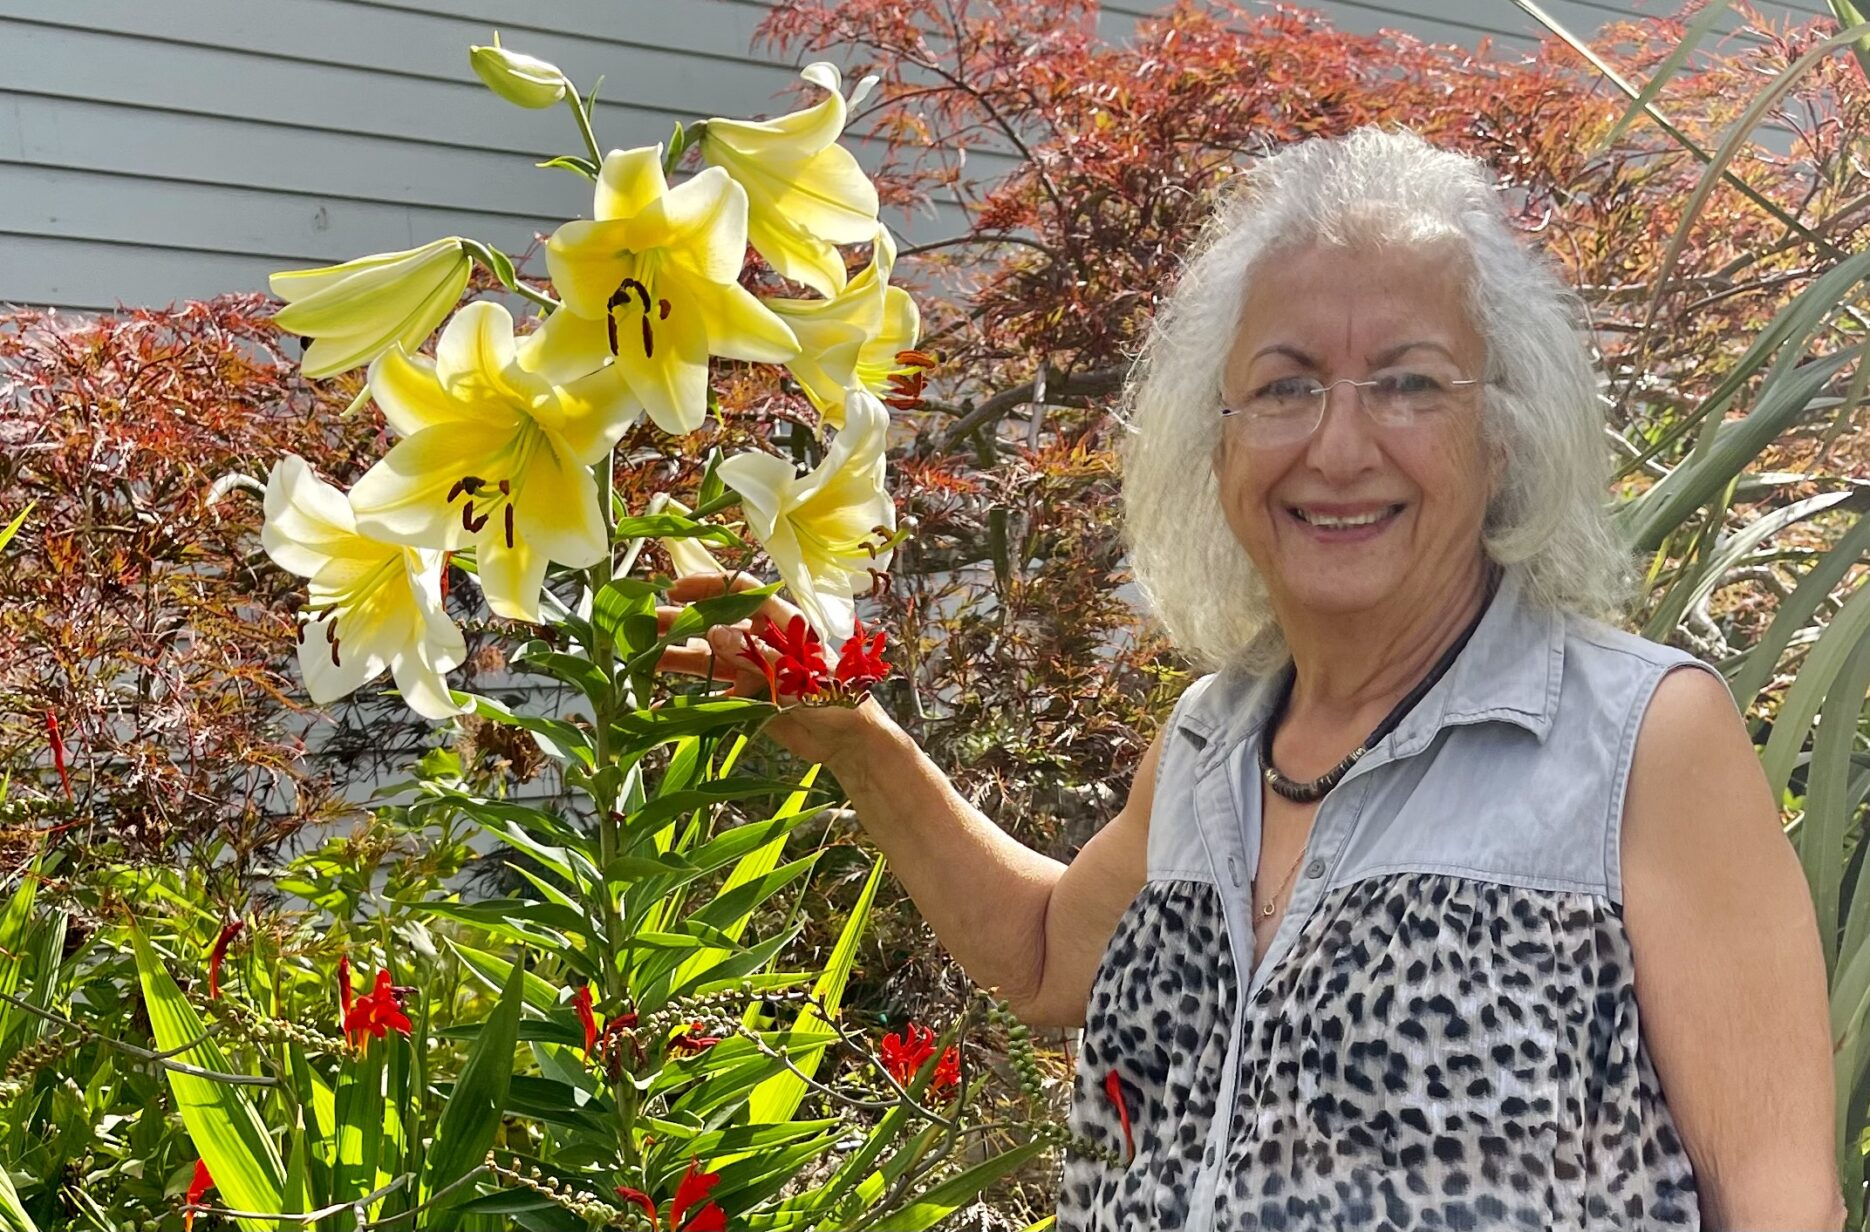 farah in her garden with tall yellow flower